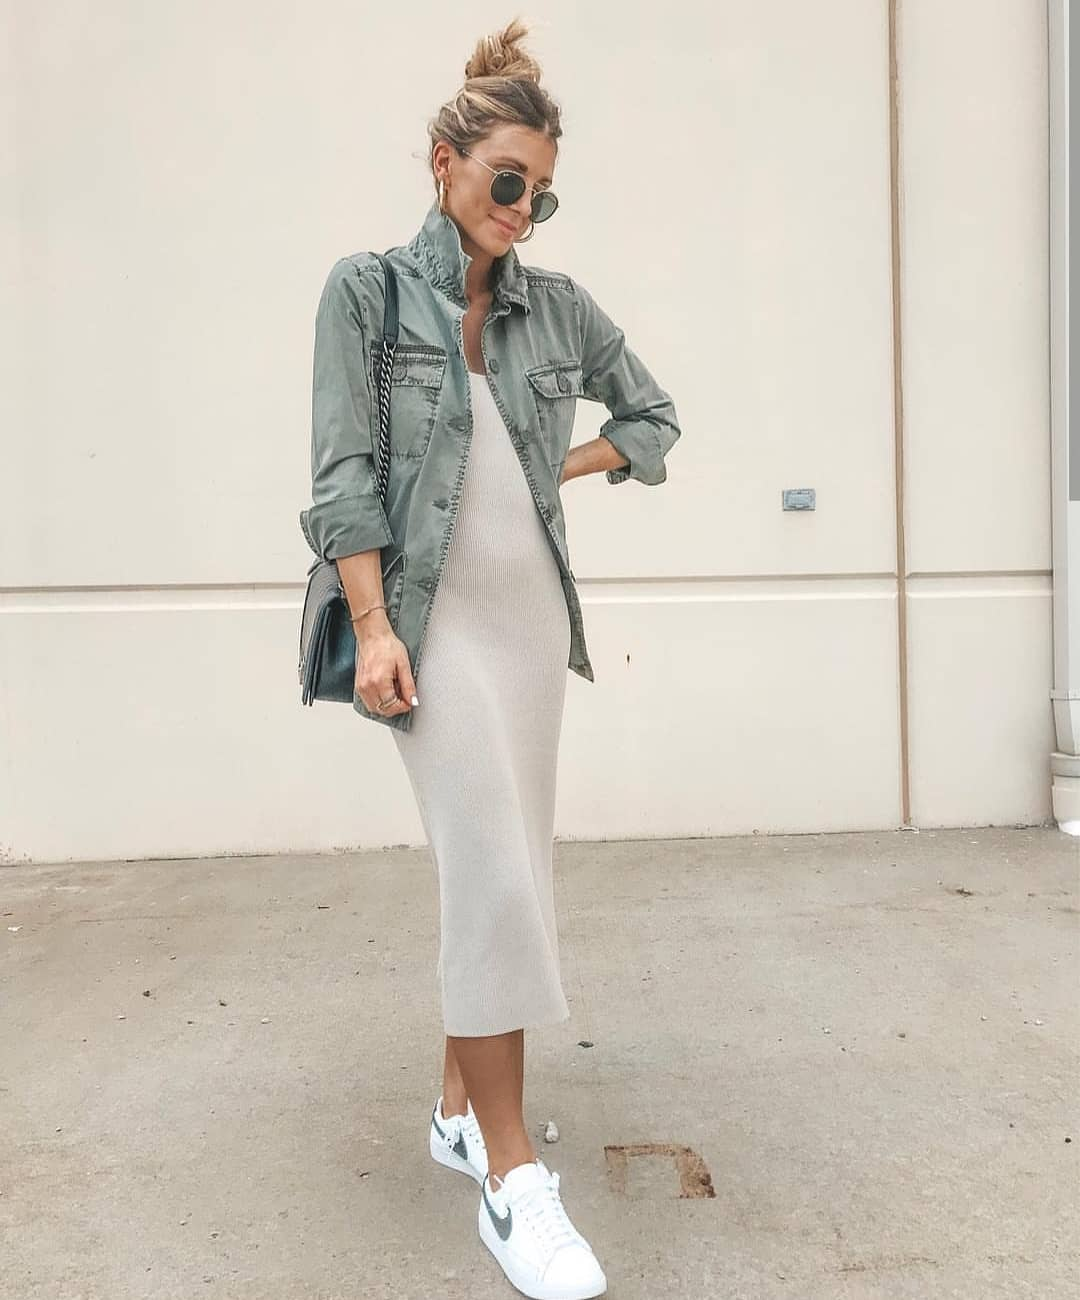 How To Wear Green Safari Jacket With Pastel Grey Midi Dress And White Sneakers 2020